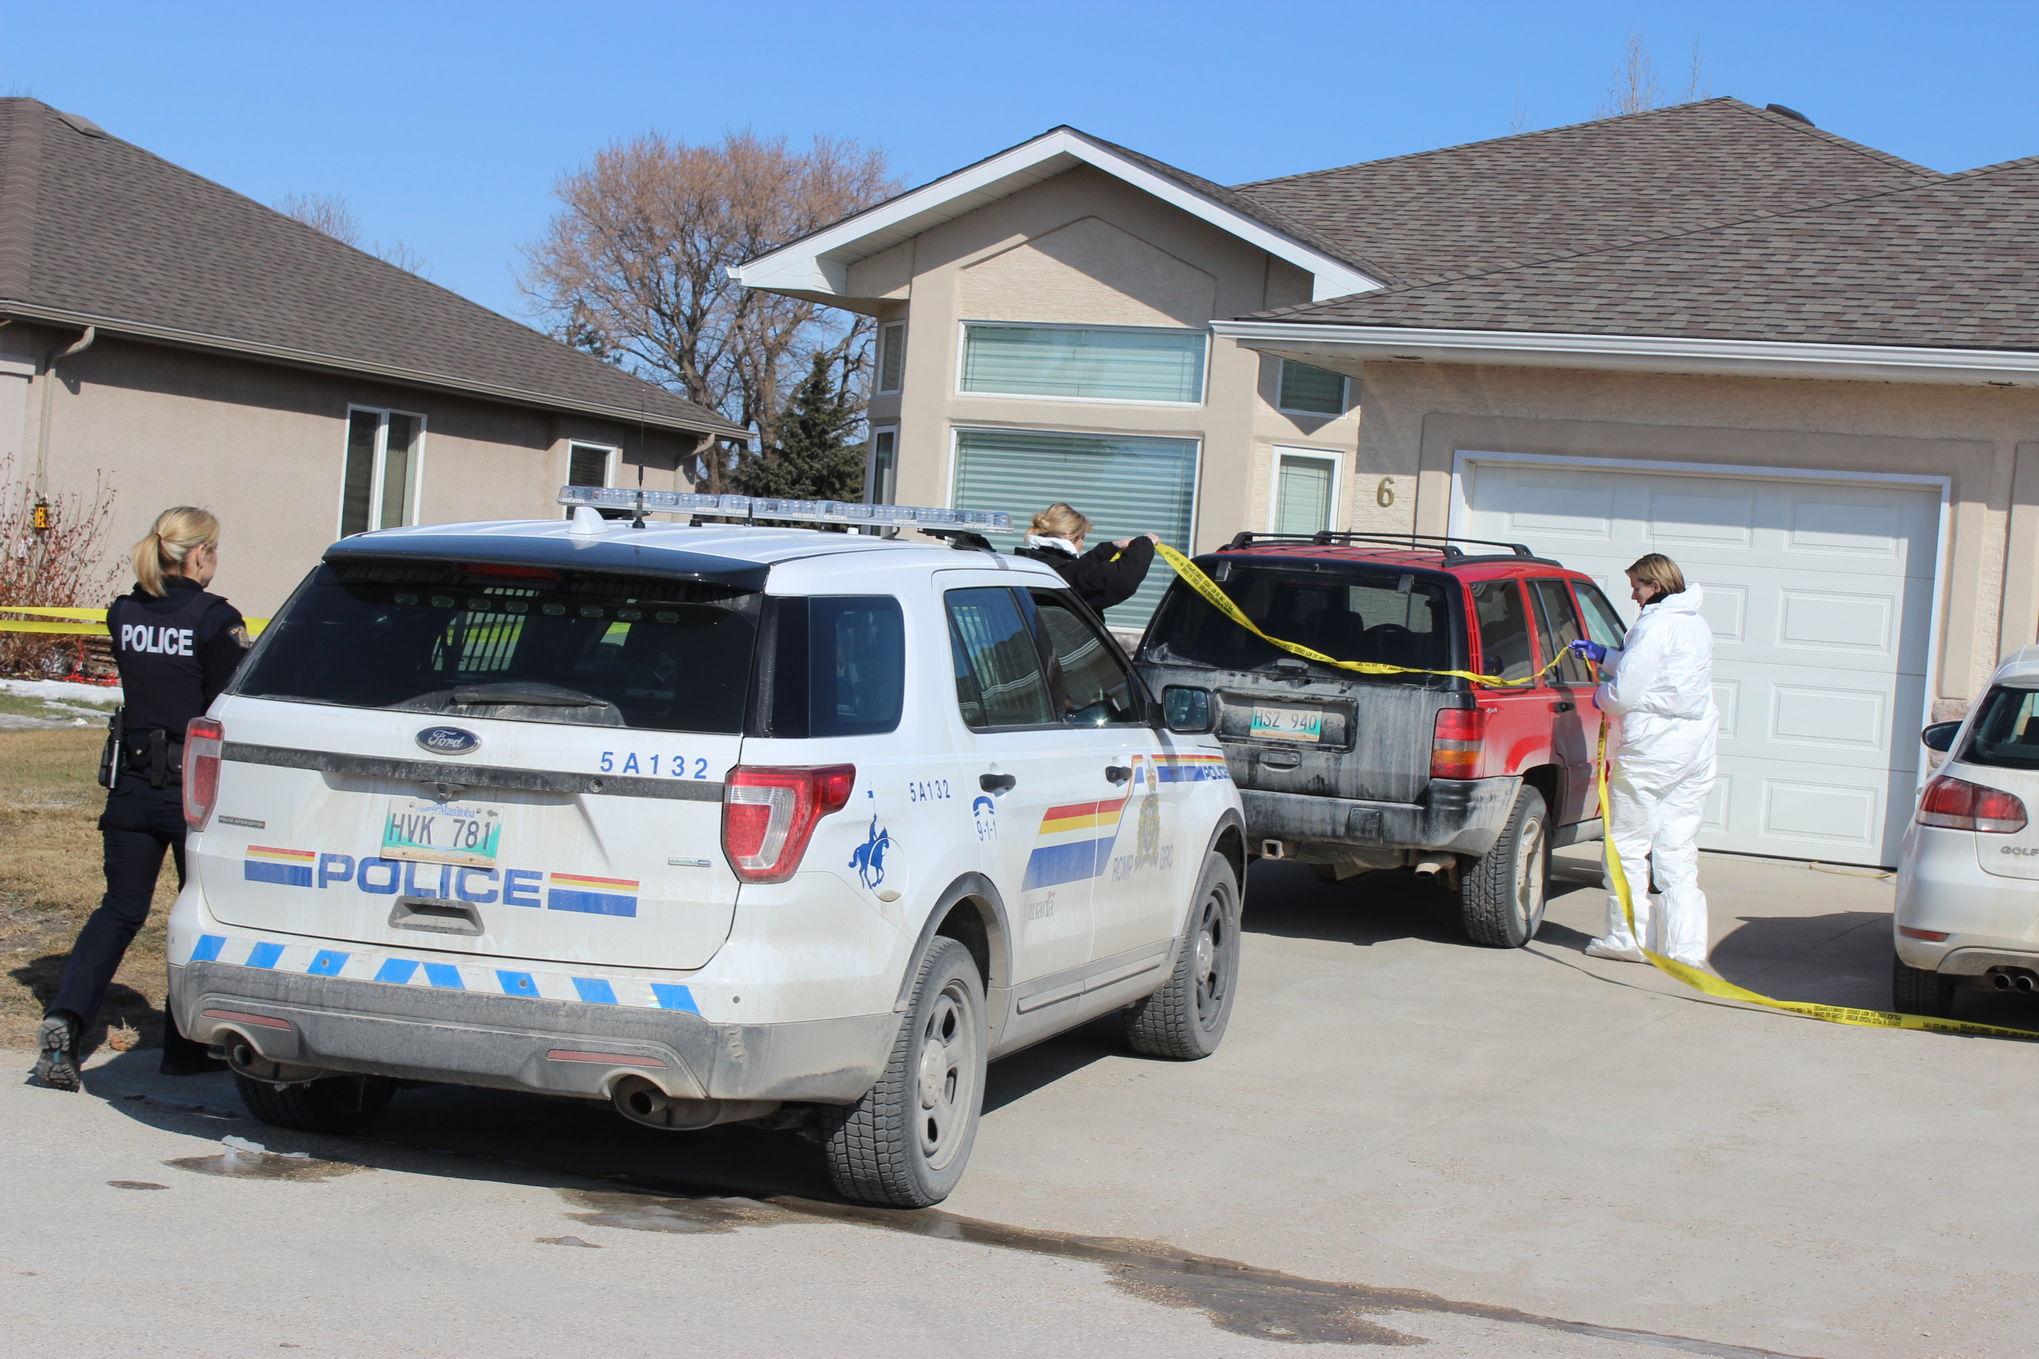 Investigators adjust police tape surrounding a home on Parkwood Cove in Steinbach on Sunday morning. RCMP said in a release that officers found a father and son dead in the home on Saturday. The deaths are considered suspicious but police added that no other individuals or suspects are being sought in the matter.